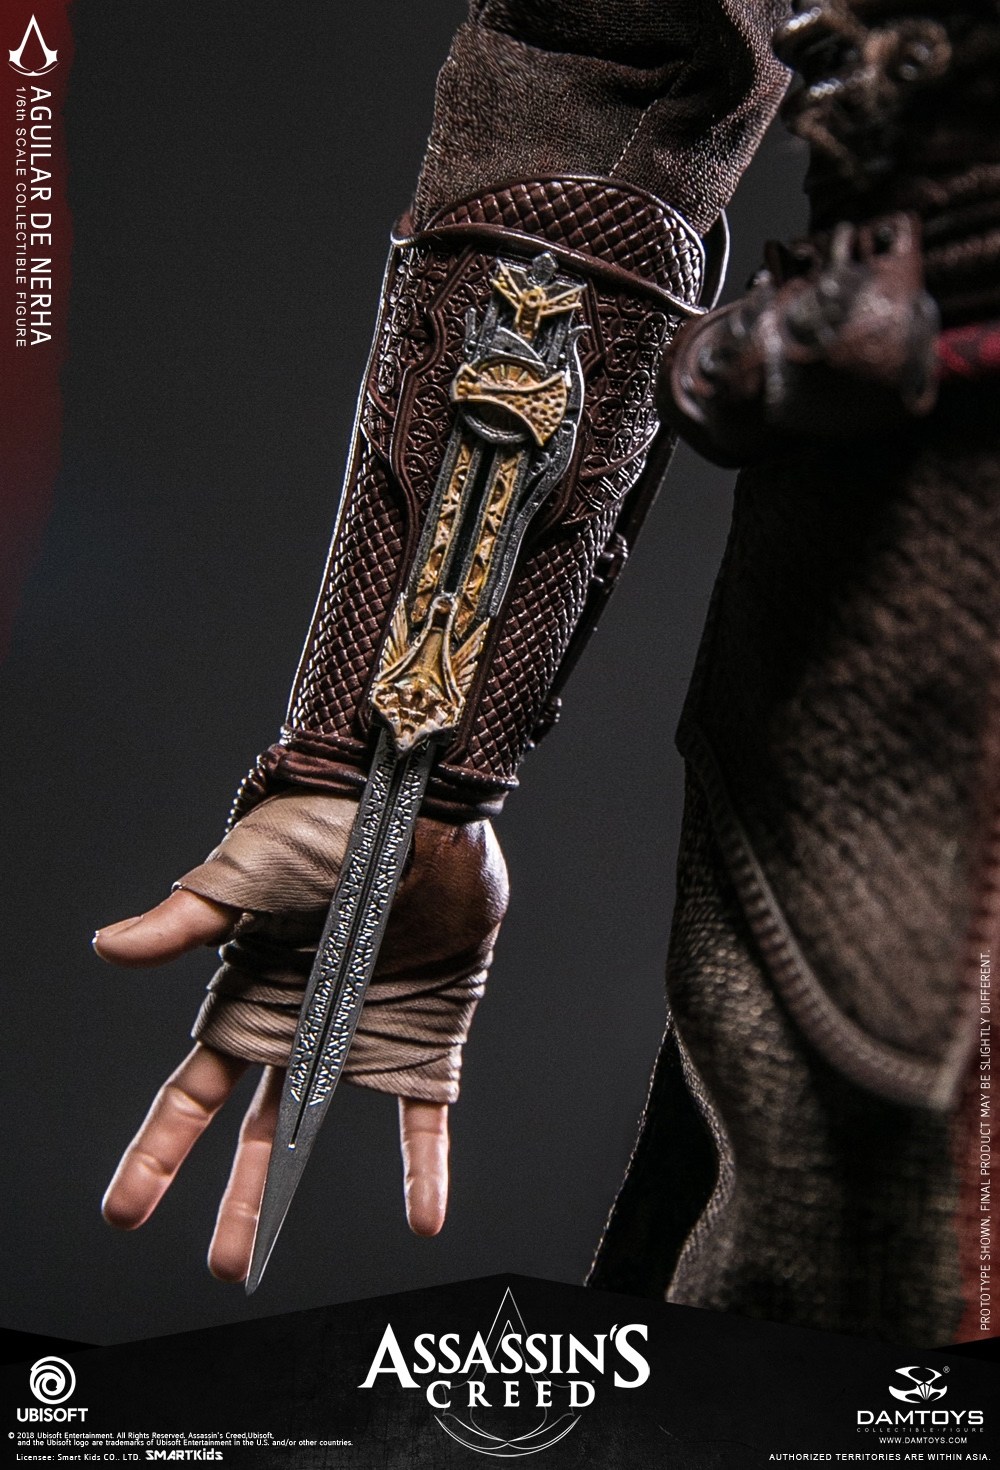 NEW PRODUCT: Damtoys–Assassin's Creed –1/6th scale Aguilar Collectible Figure Specifications 130715uc49coi5cc8plplw